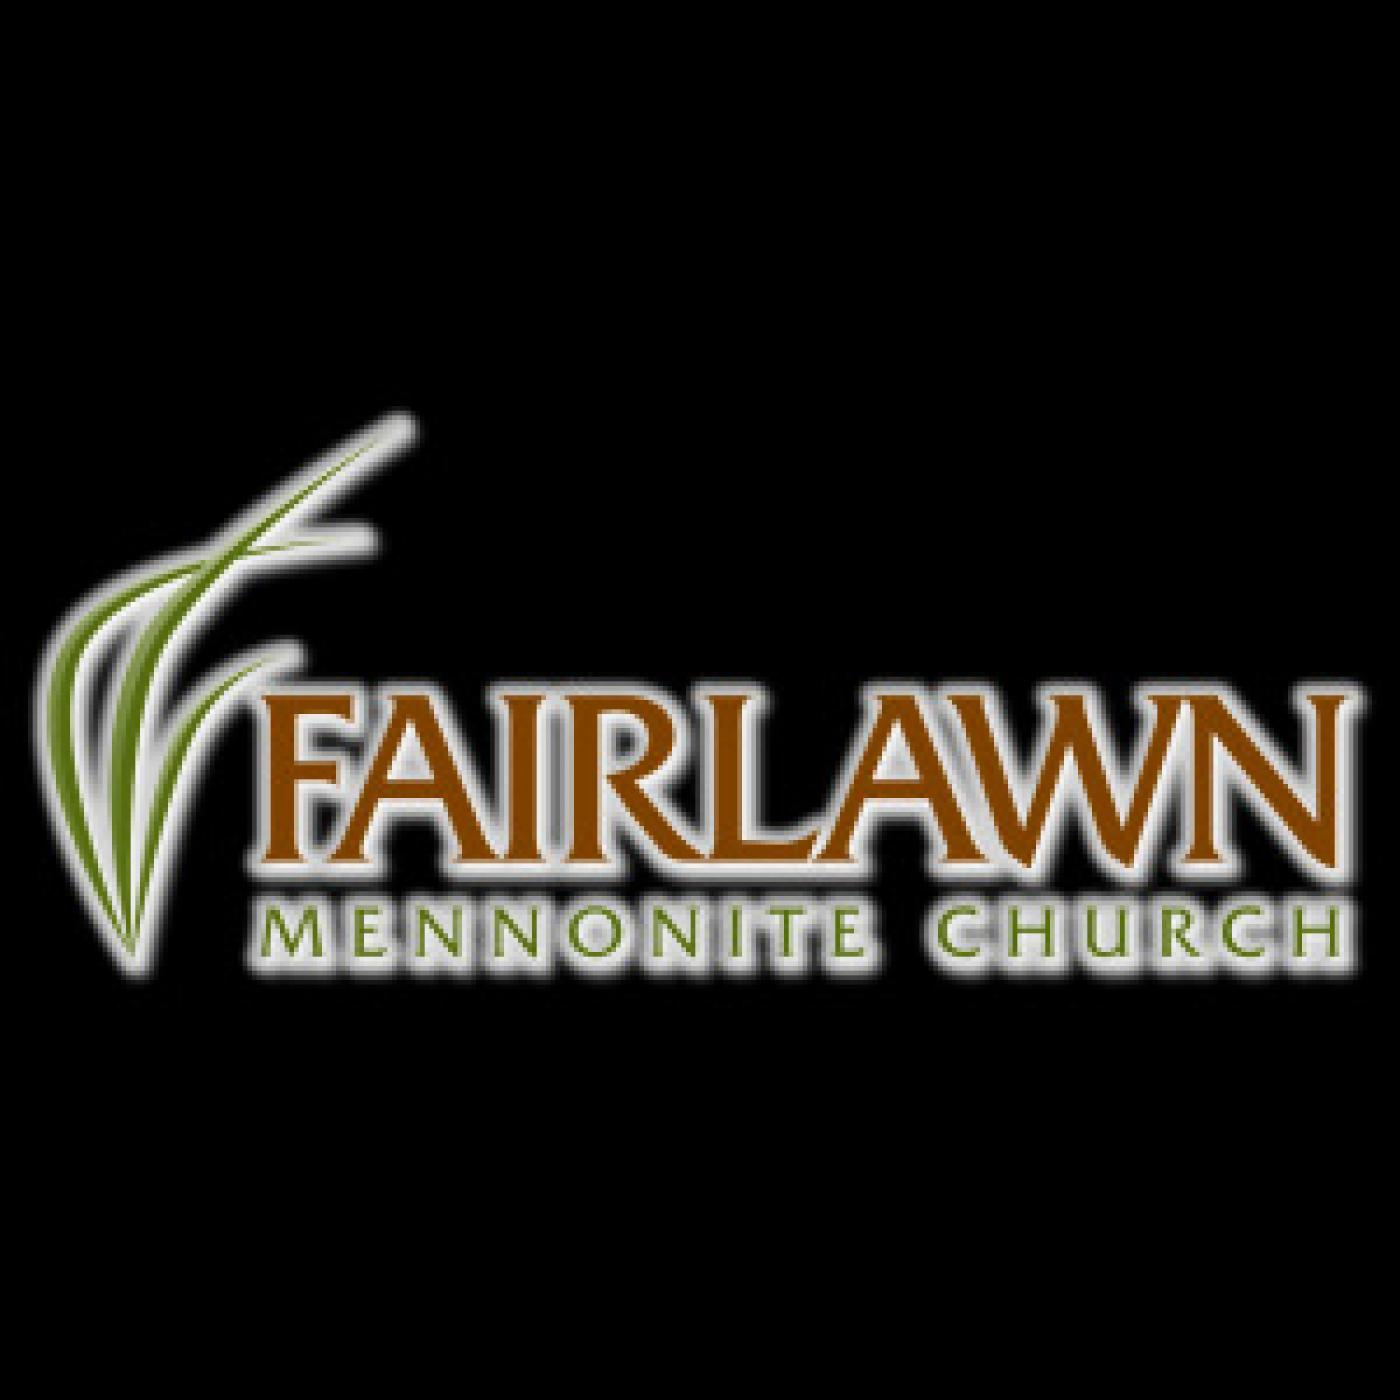 Fairlawn Mennonite Church